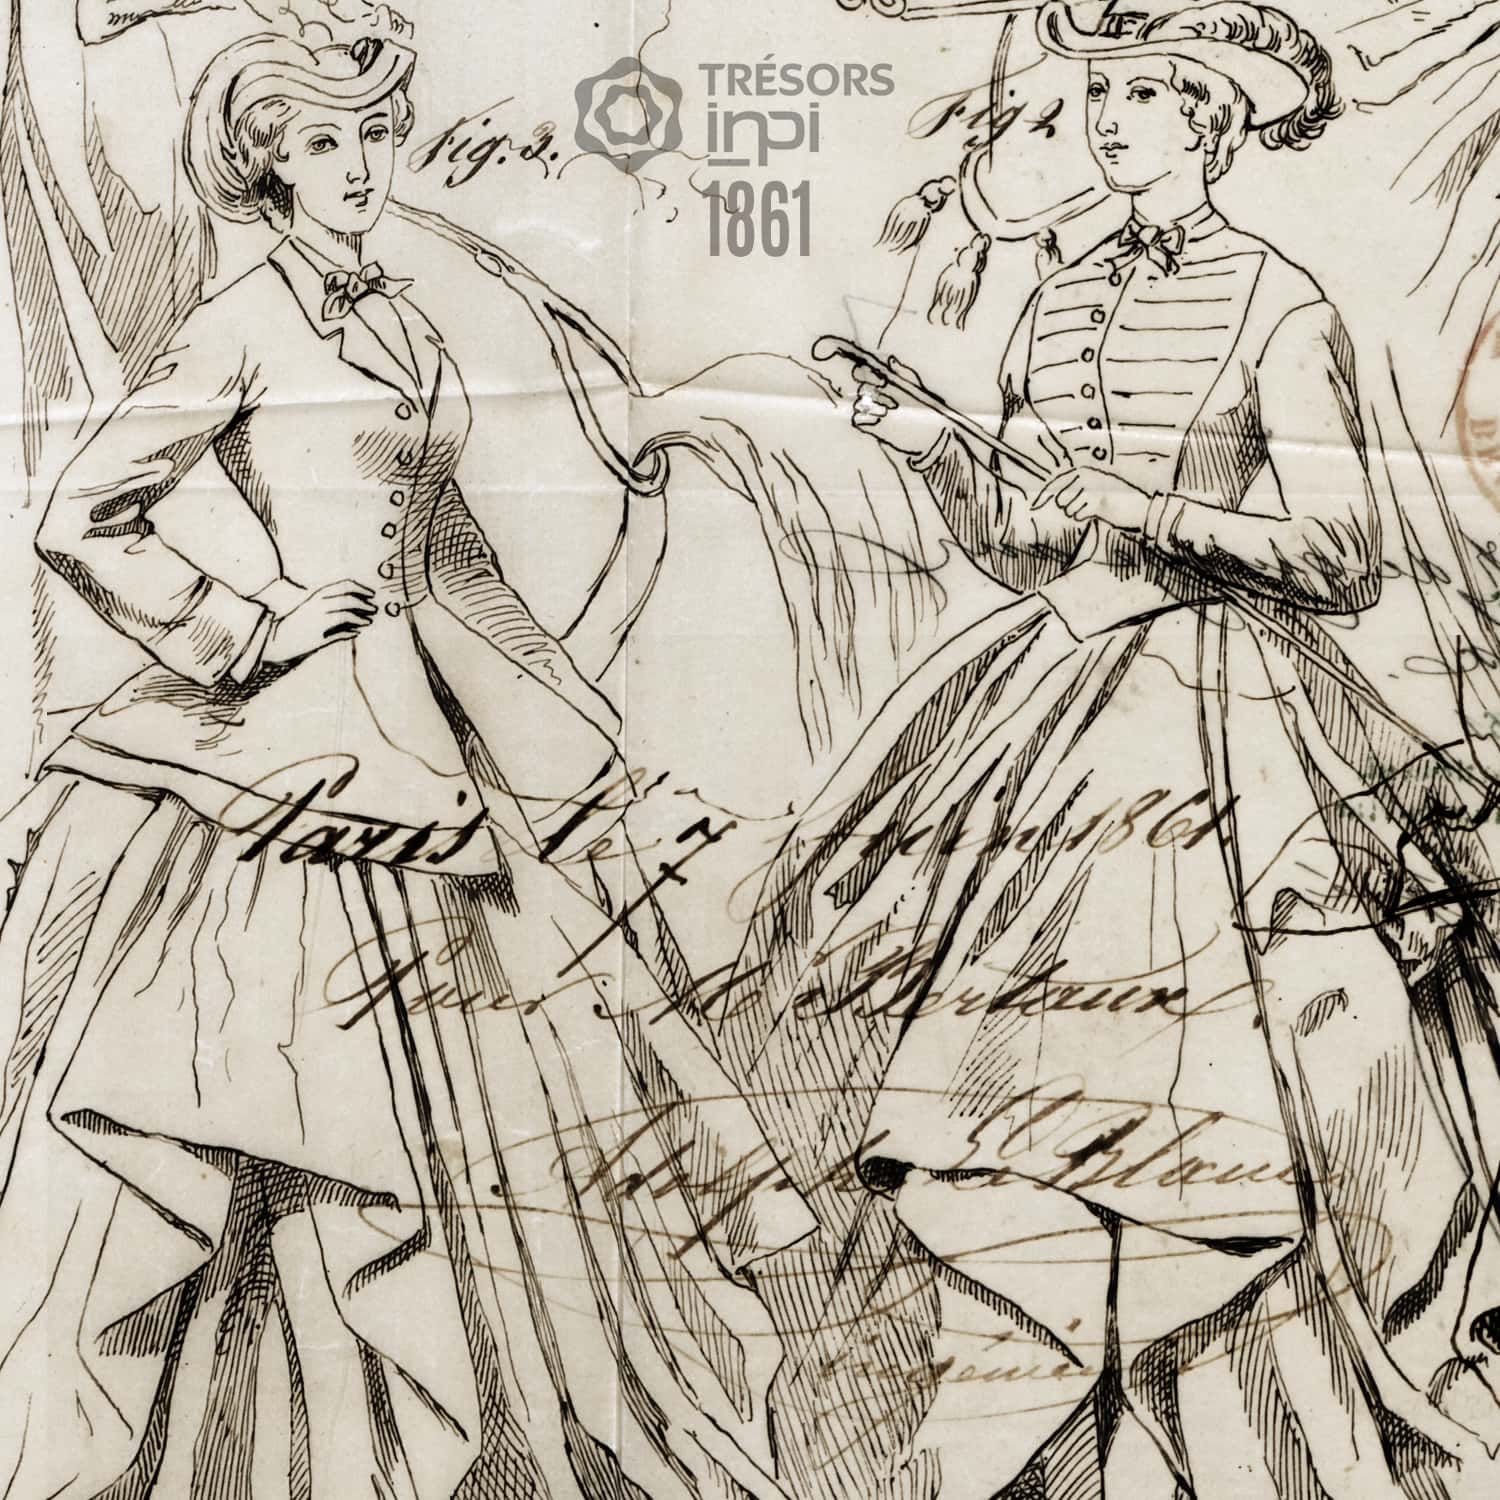 Bertaux 1861 invention for Amazon costumes - INPI archives